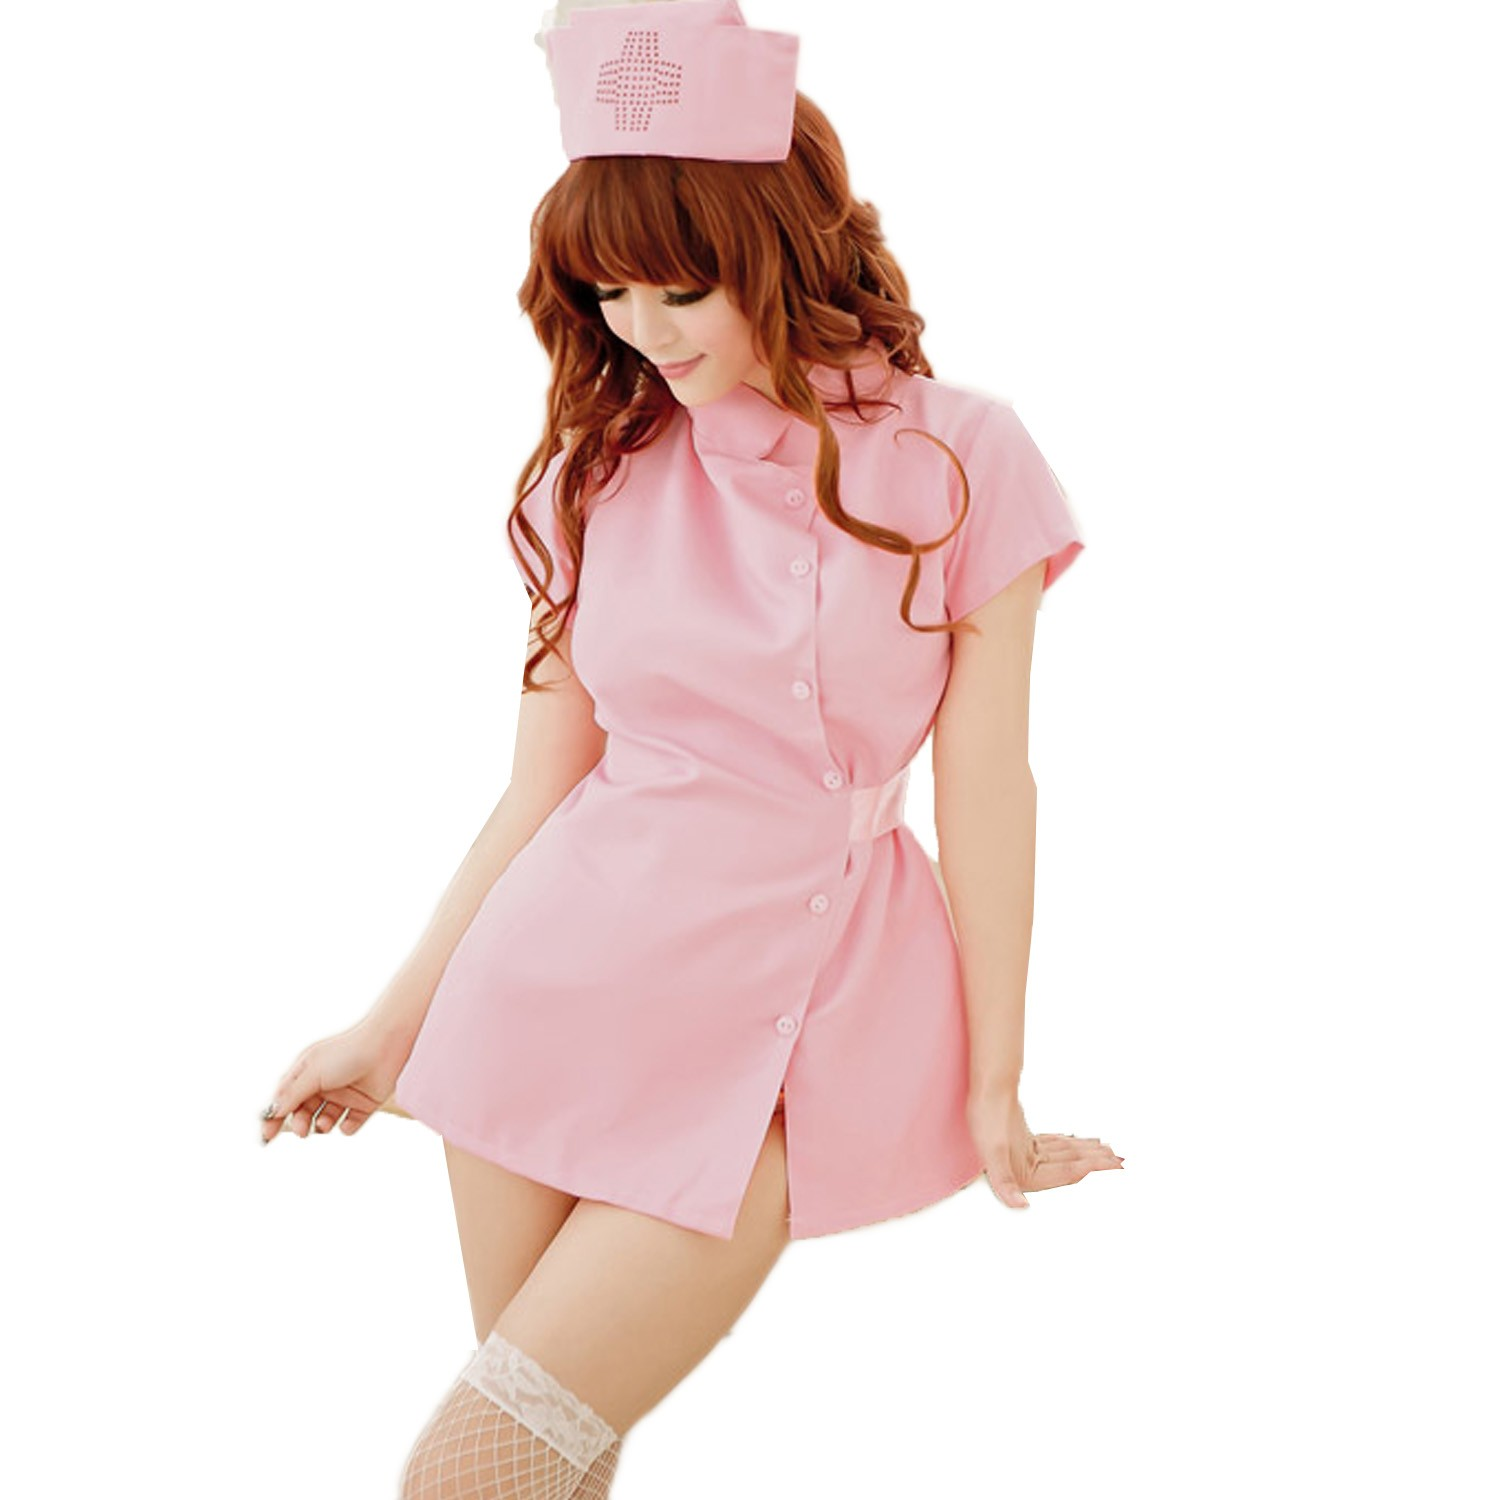 sexparty nurse